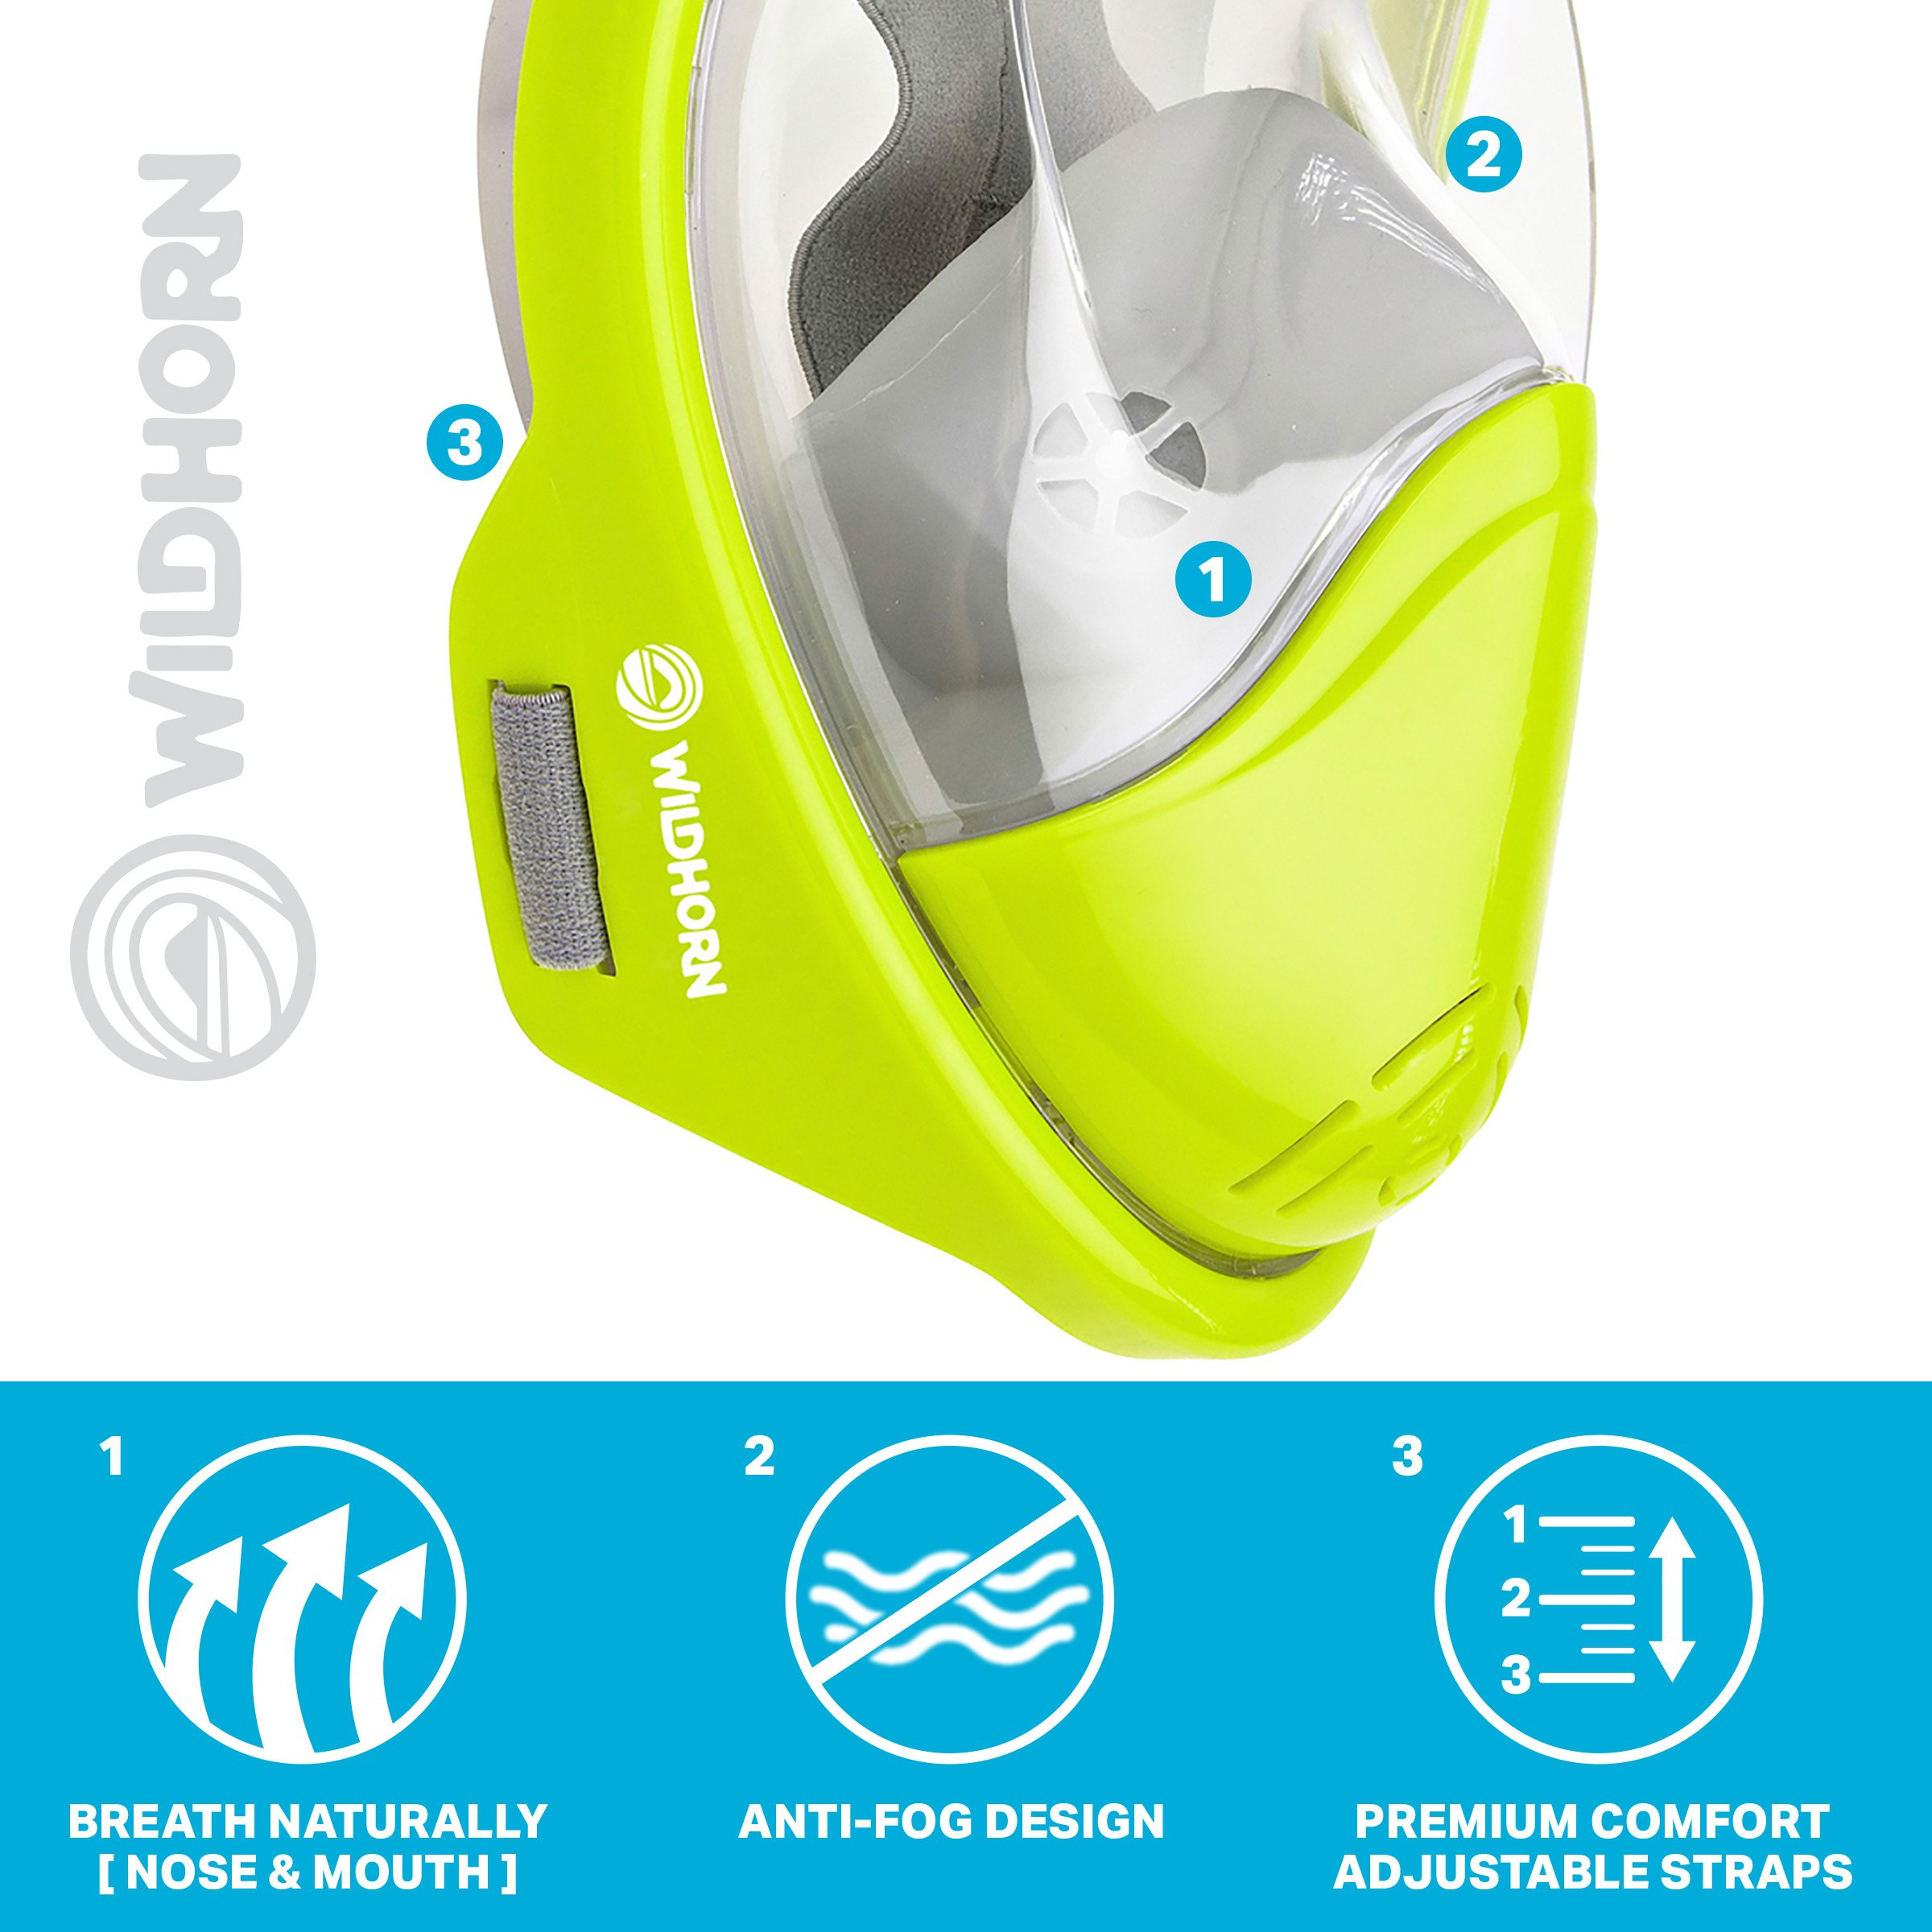 Seaview 180° GoPro Compatible Snorkel Mask- Panoramic Full Face Design. See More With Larger Viewing Area Than Traditional Masks. Prevents Gag Reflex with Tubeless Design (Electric, S/M) by WildHorn Outfitters (Image #5)